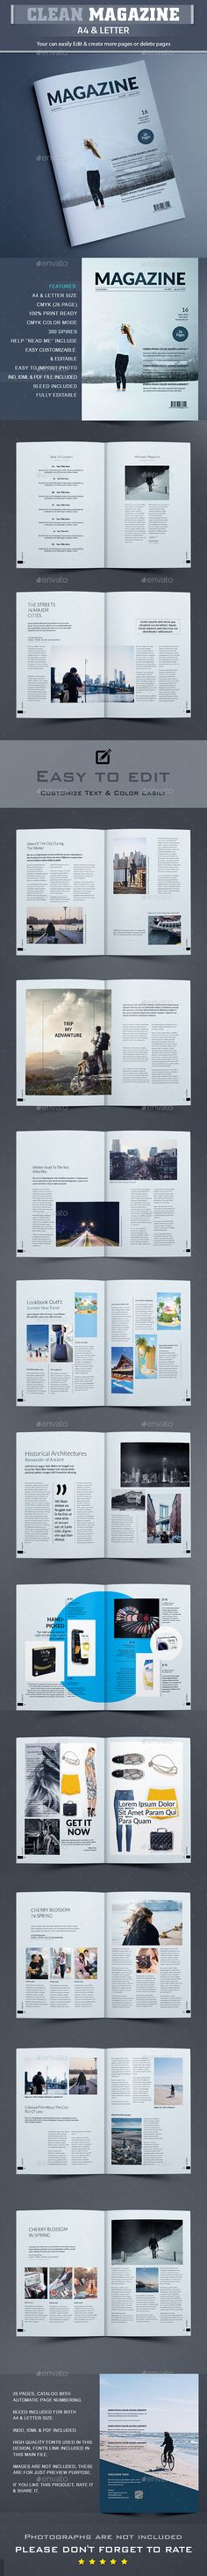 #Multipurpose #Magazine #Template - Magazines #Print #Templates Download here: https://graphicriver.net/item/multipurpose-magazine-template/19135899?ref=alena994